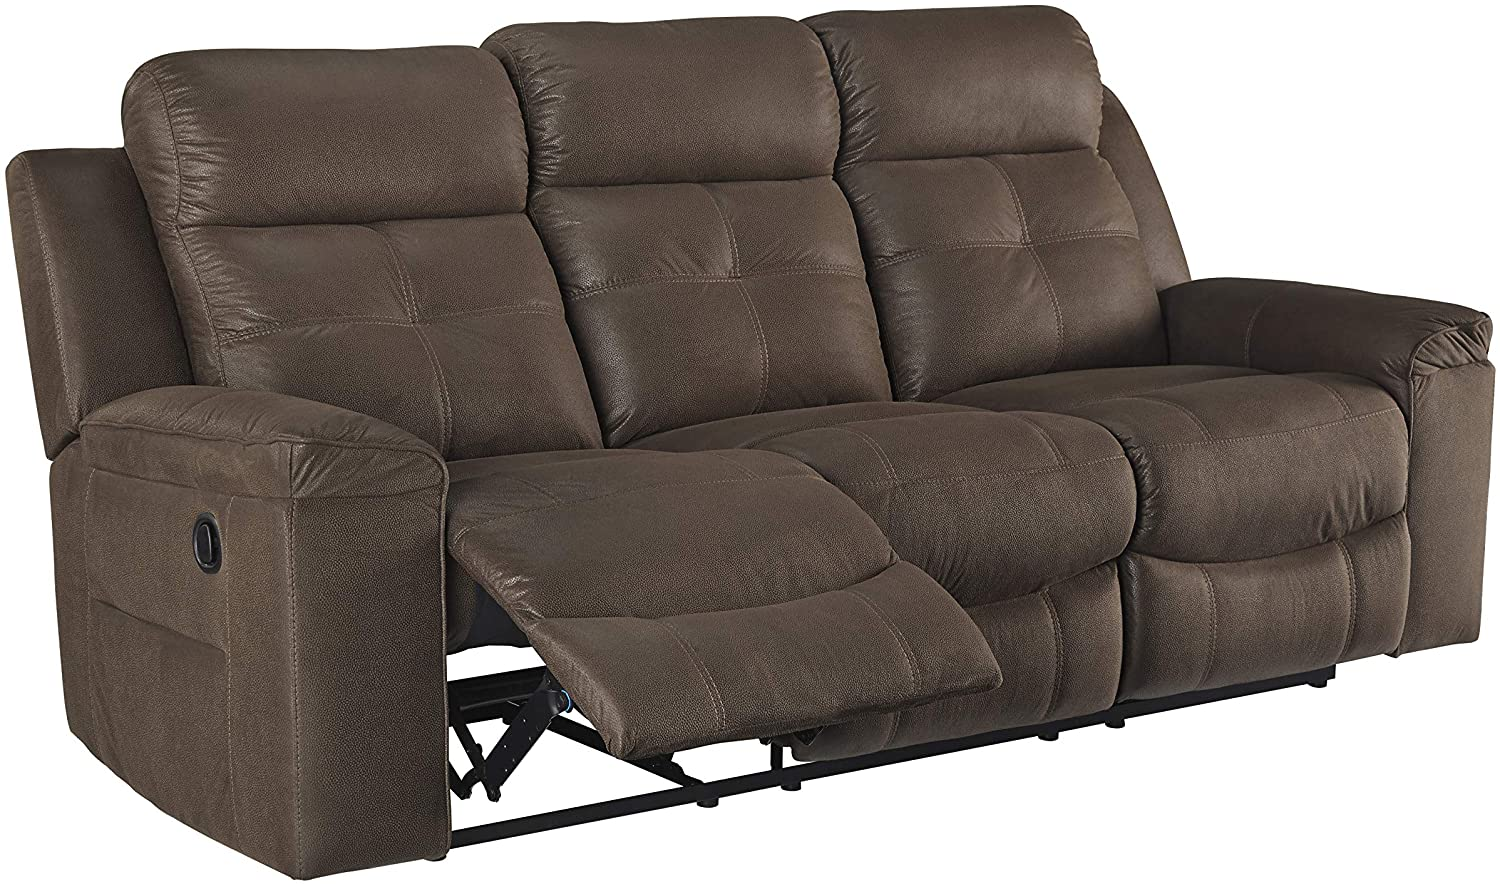 Signature Design by Ashley - Jesolo Casual Faux Leather Reclining Sofa - Pull Tab Reclining - Dark Brown